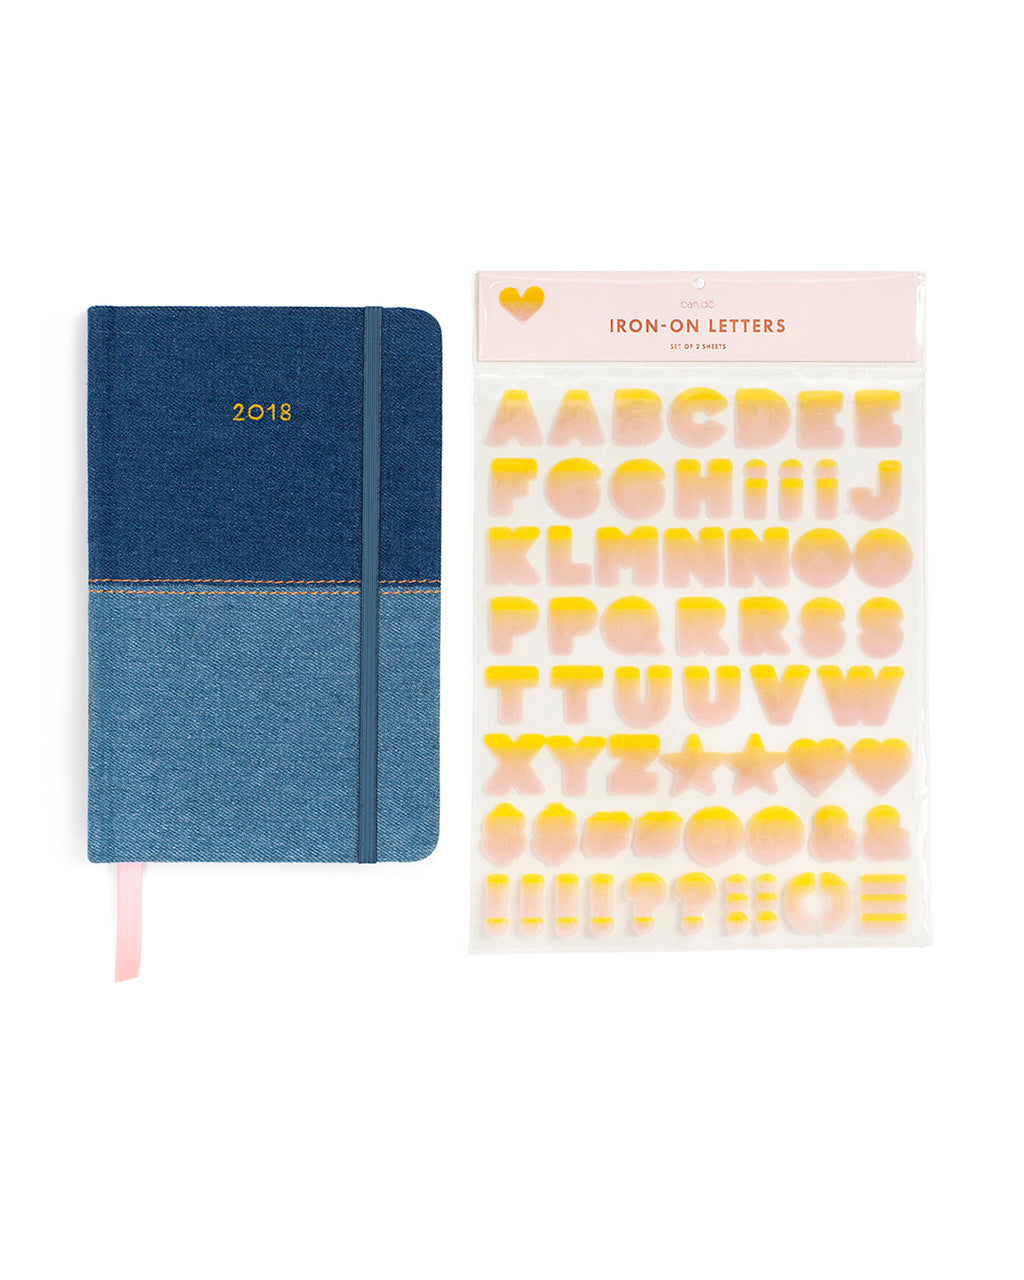 self-expression denim agenda bundle